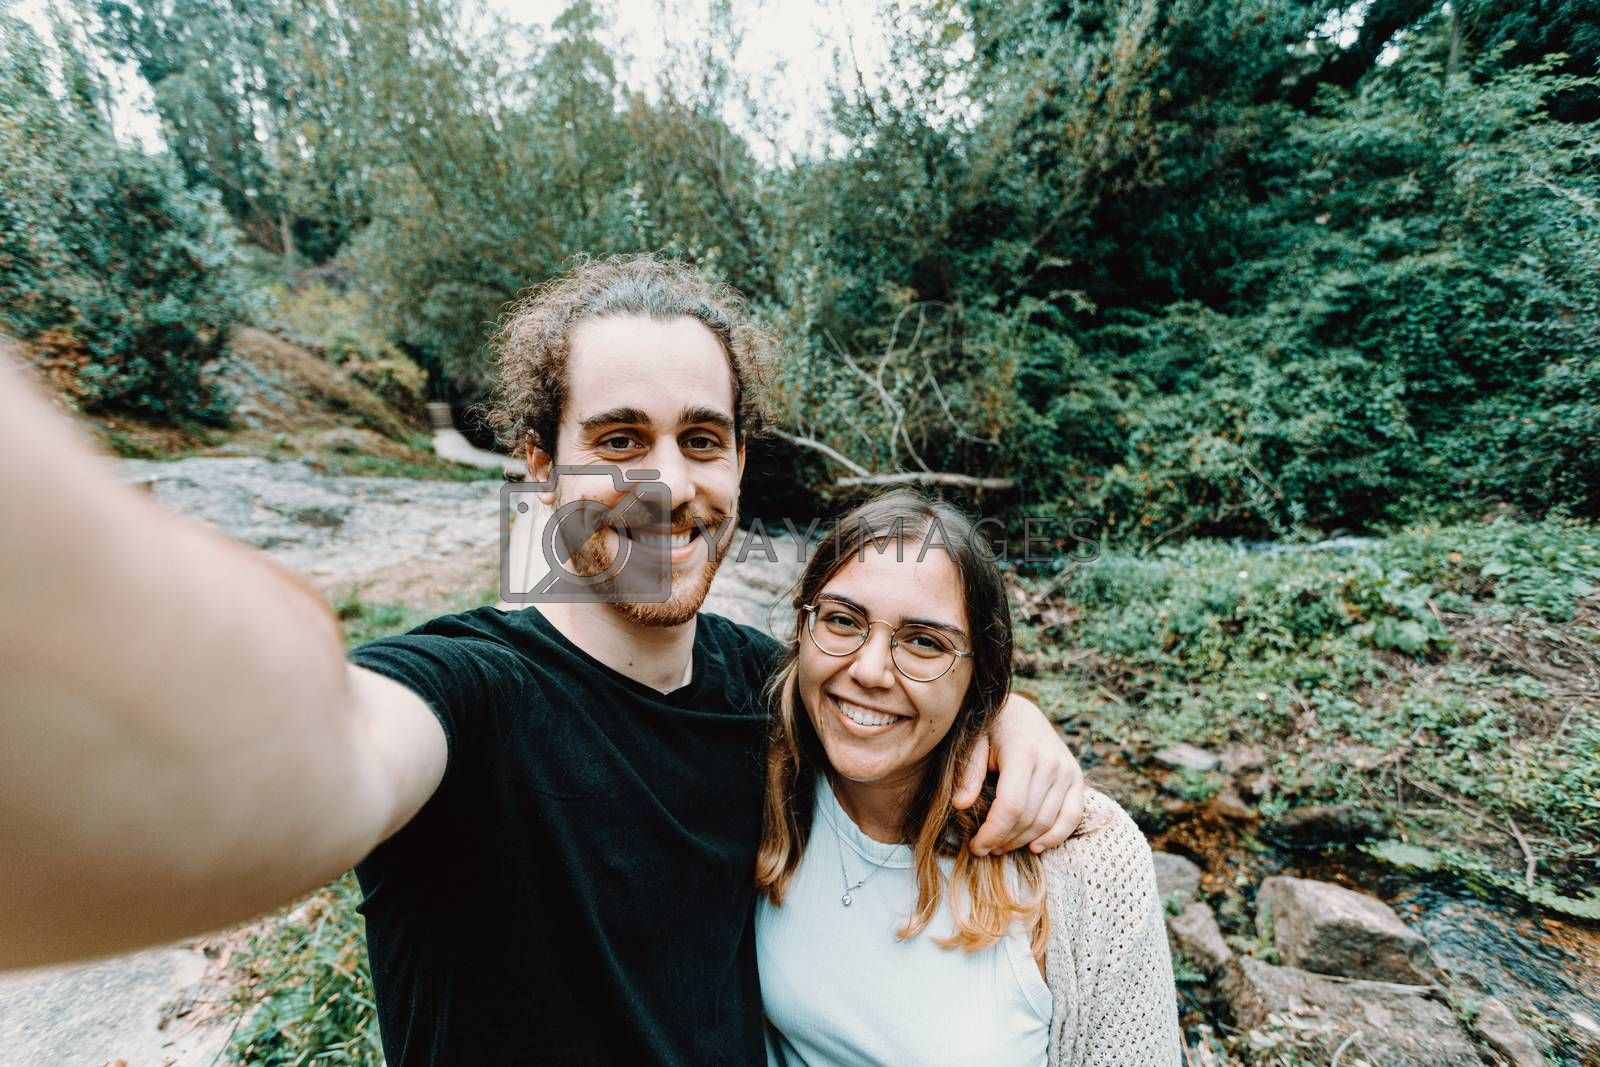 A selfie of a young couple giving a bis smile to the camera on the forest